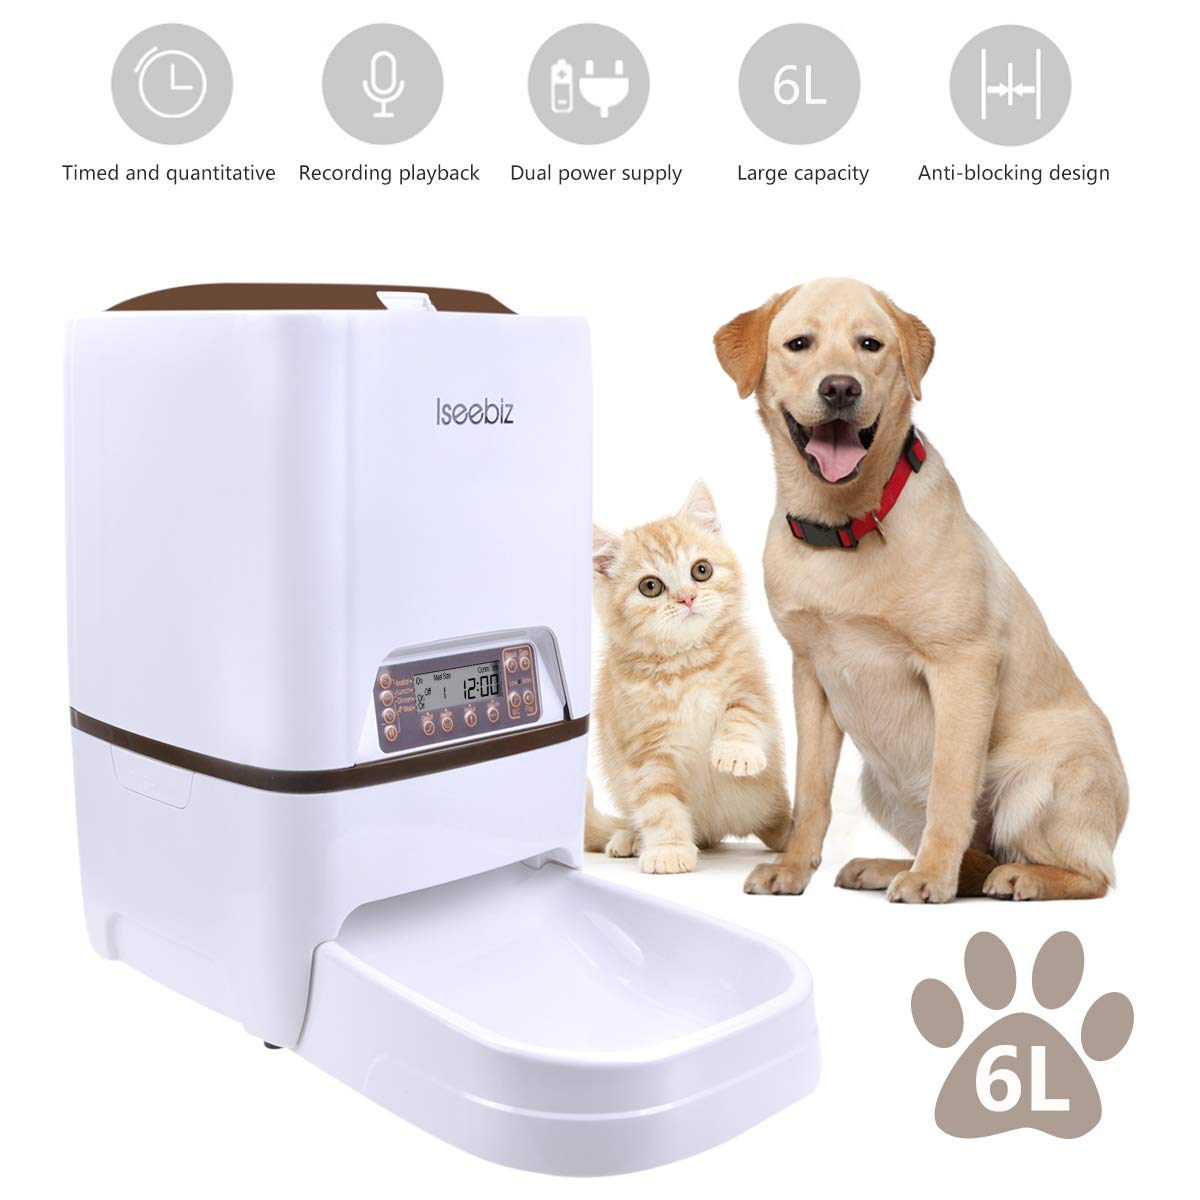 Automatic Cat Feeder Pet Food Dispenser Feeder Medium Large Cat Dog——4 Meal, Voice Recorder Timer Programmable,Portion Control Iseebiz